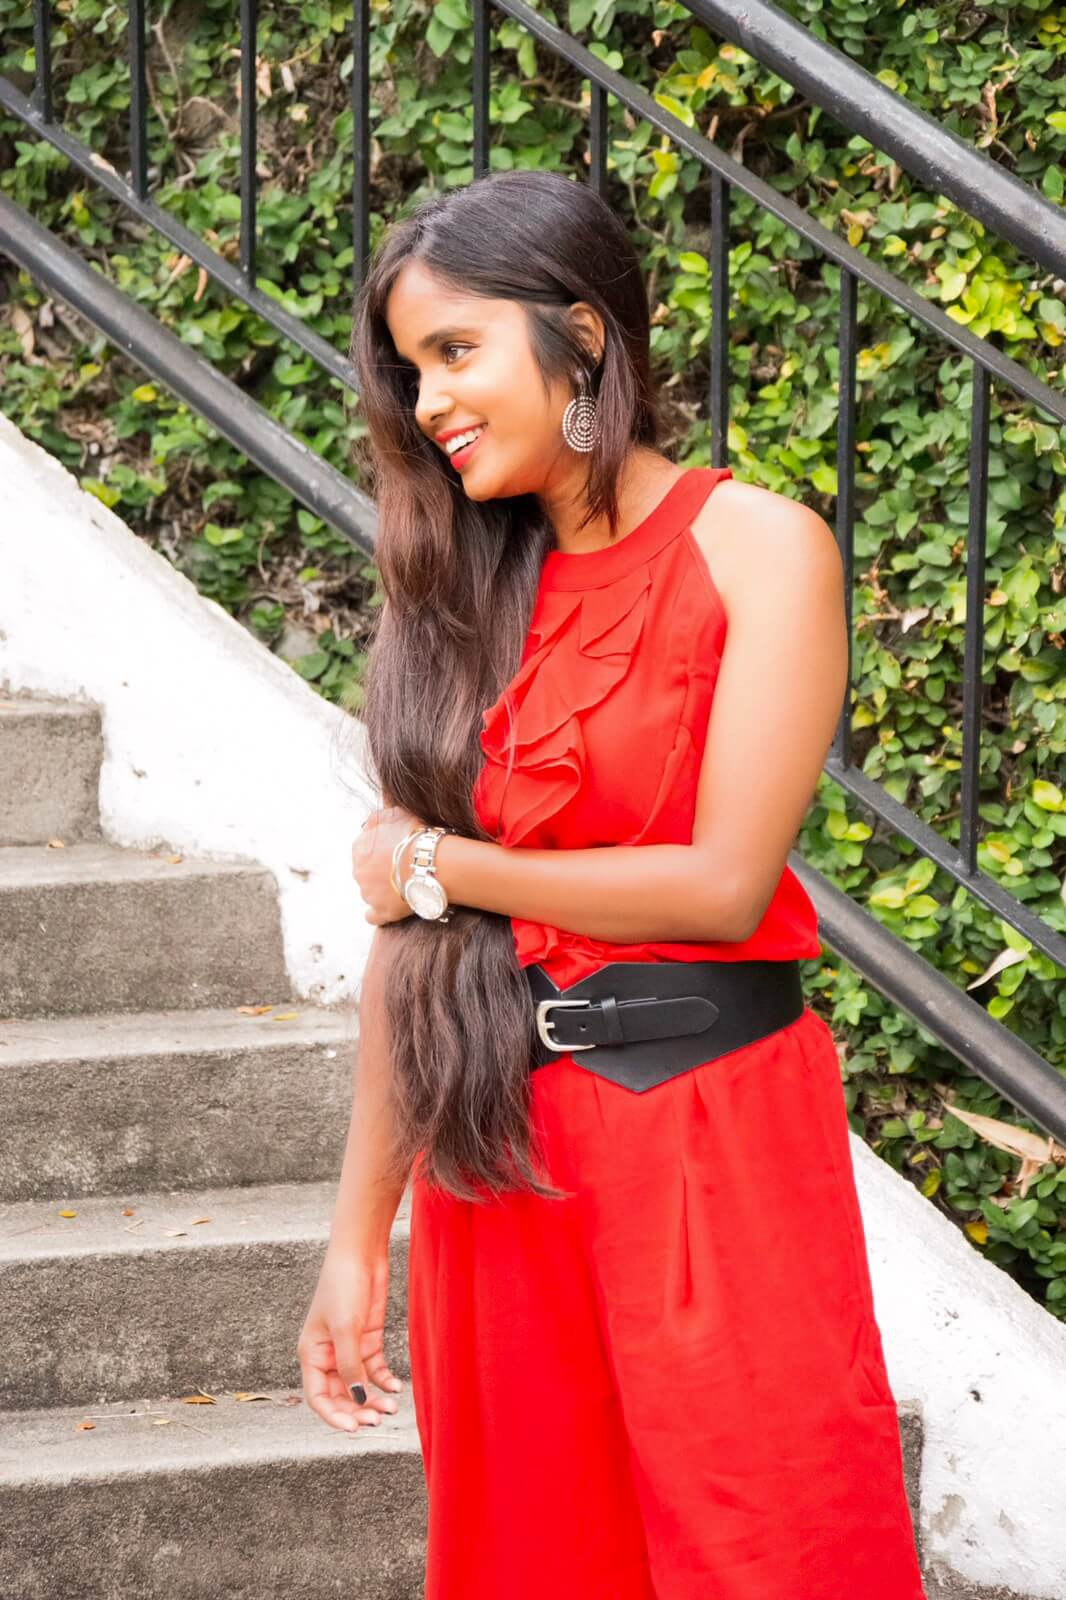 valentines day outfit ideas : girl with long hair wearing red dress